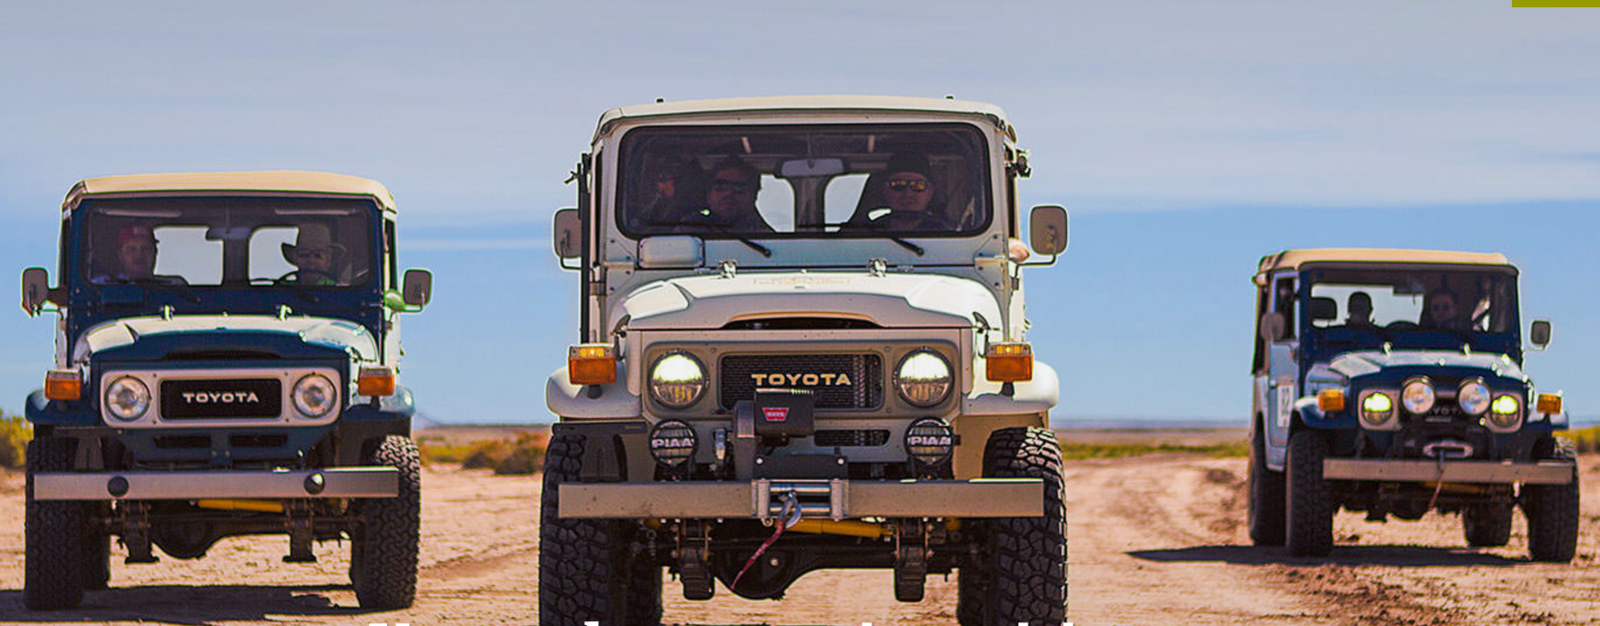 Why not take the path less travelled in your own 1982 Toyota Land Cruiser, completely rebuilt to your specifications? FJ Company's vision is to create a family-friendly traveller that's fit enough for the rigors of driving in the Colorado backcountry and equally as sure-footed on big-city freeways. It's one part classic Land Cruiser, one part  Photo 11 of 11 in 9 Adventure Seekers Who Celebrate Small Space Living Through the Van Life